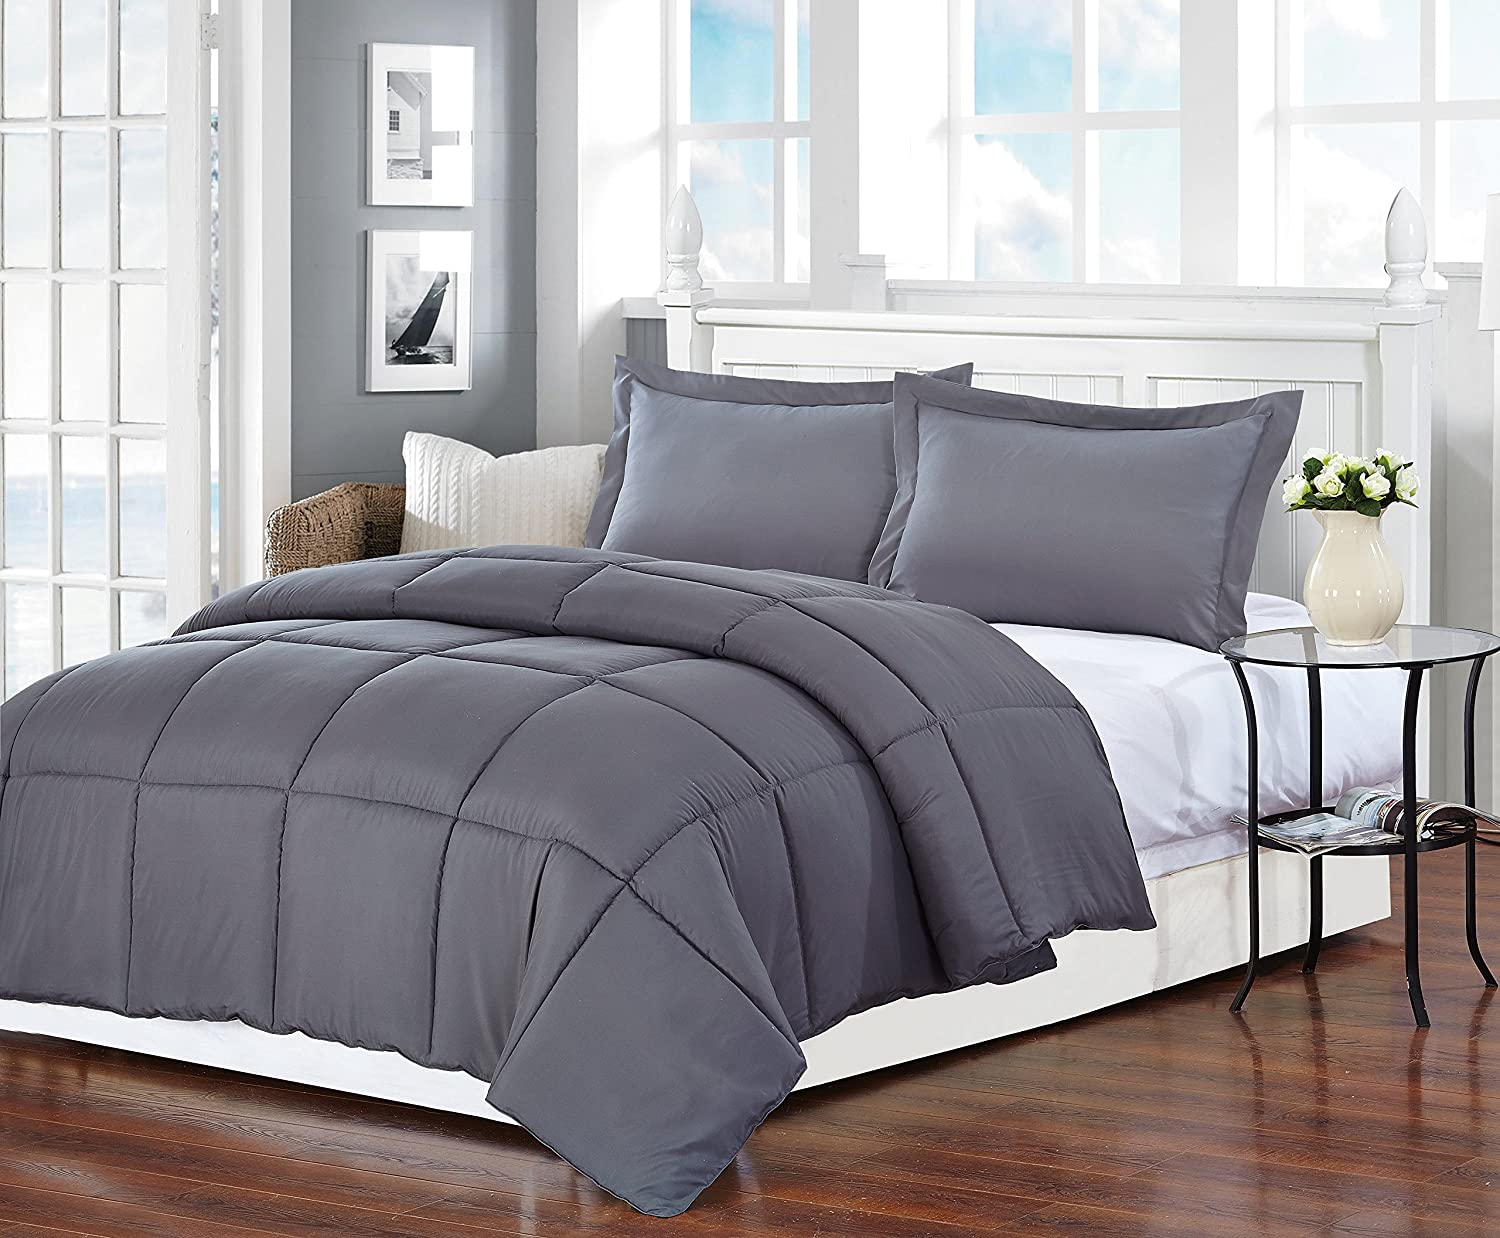 linen grey buy cover sheet comforter bedding sets ezibuy bird at pin online duvet includes bed